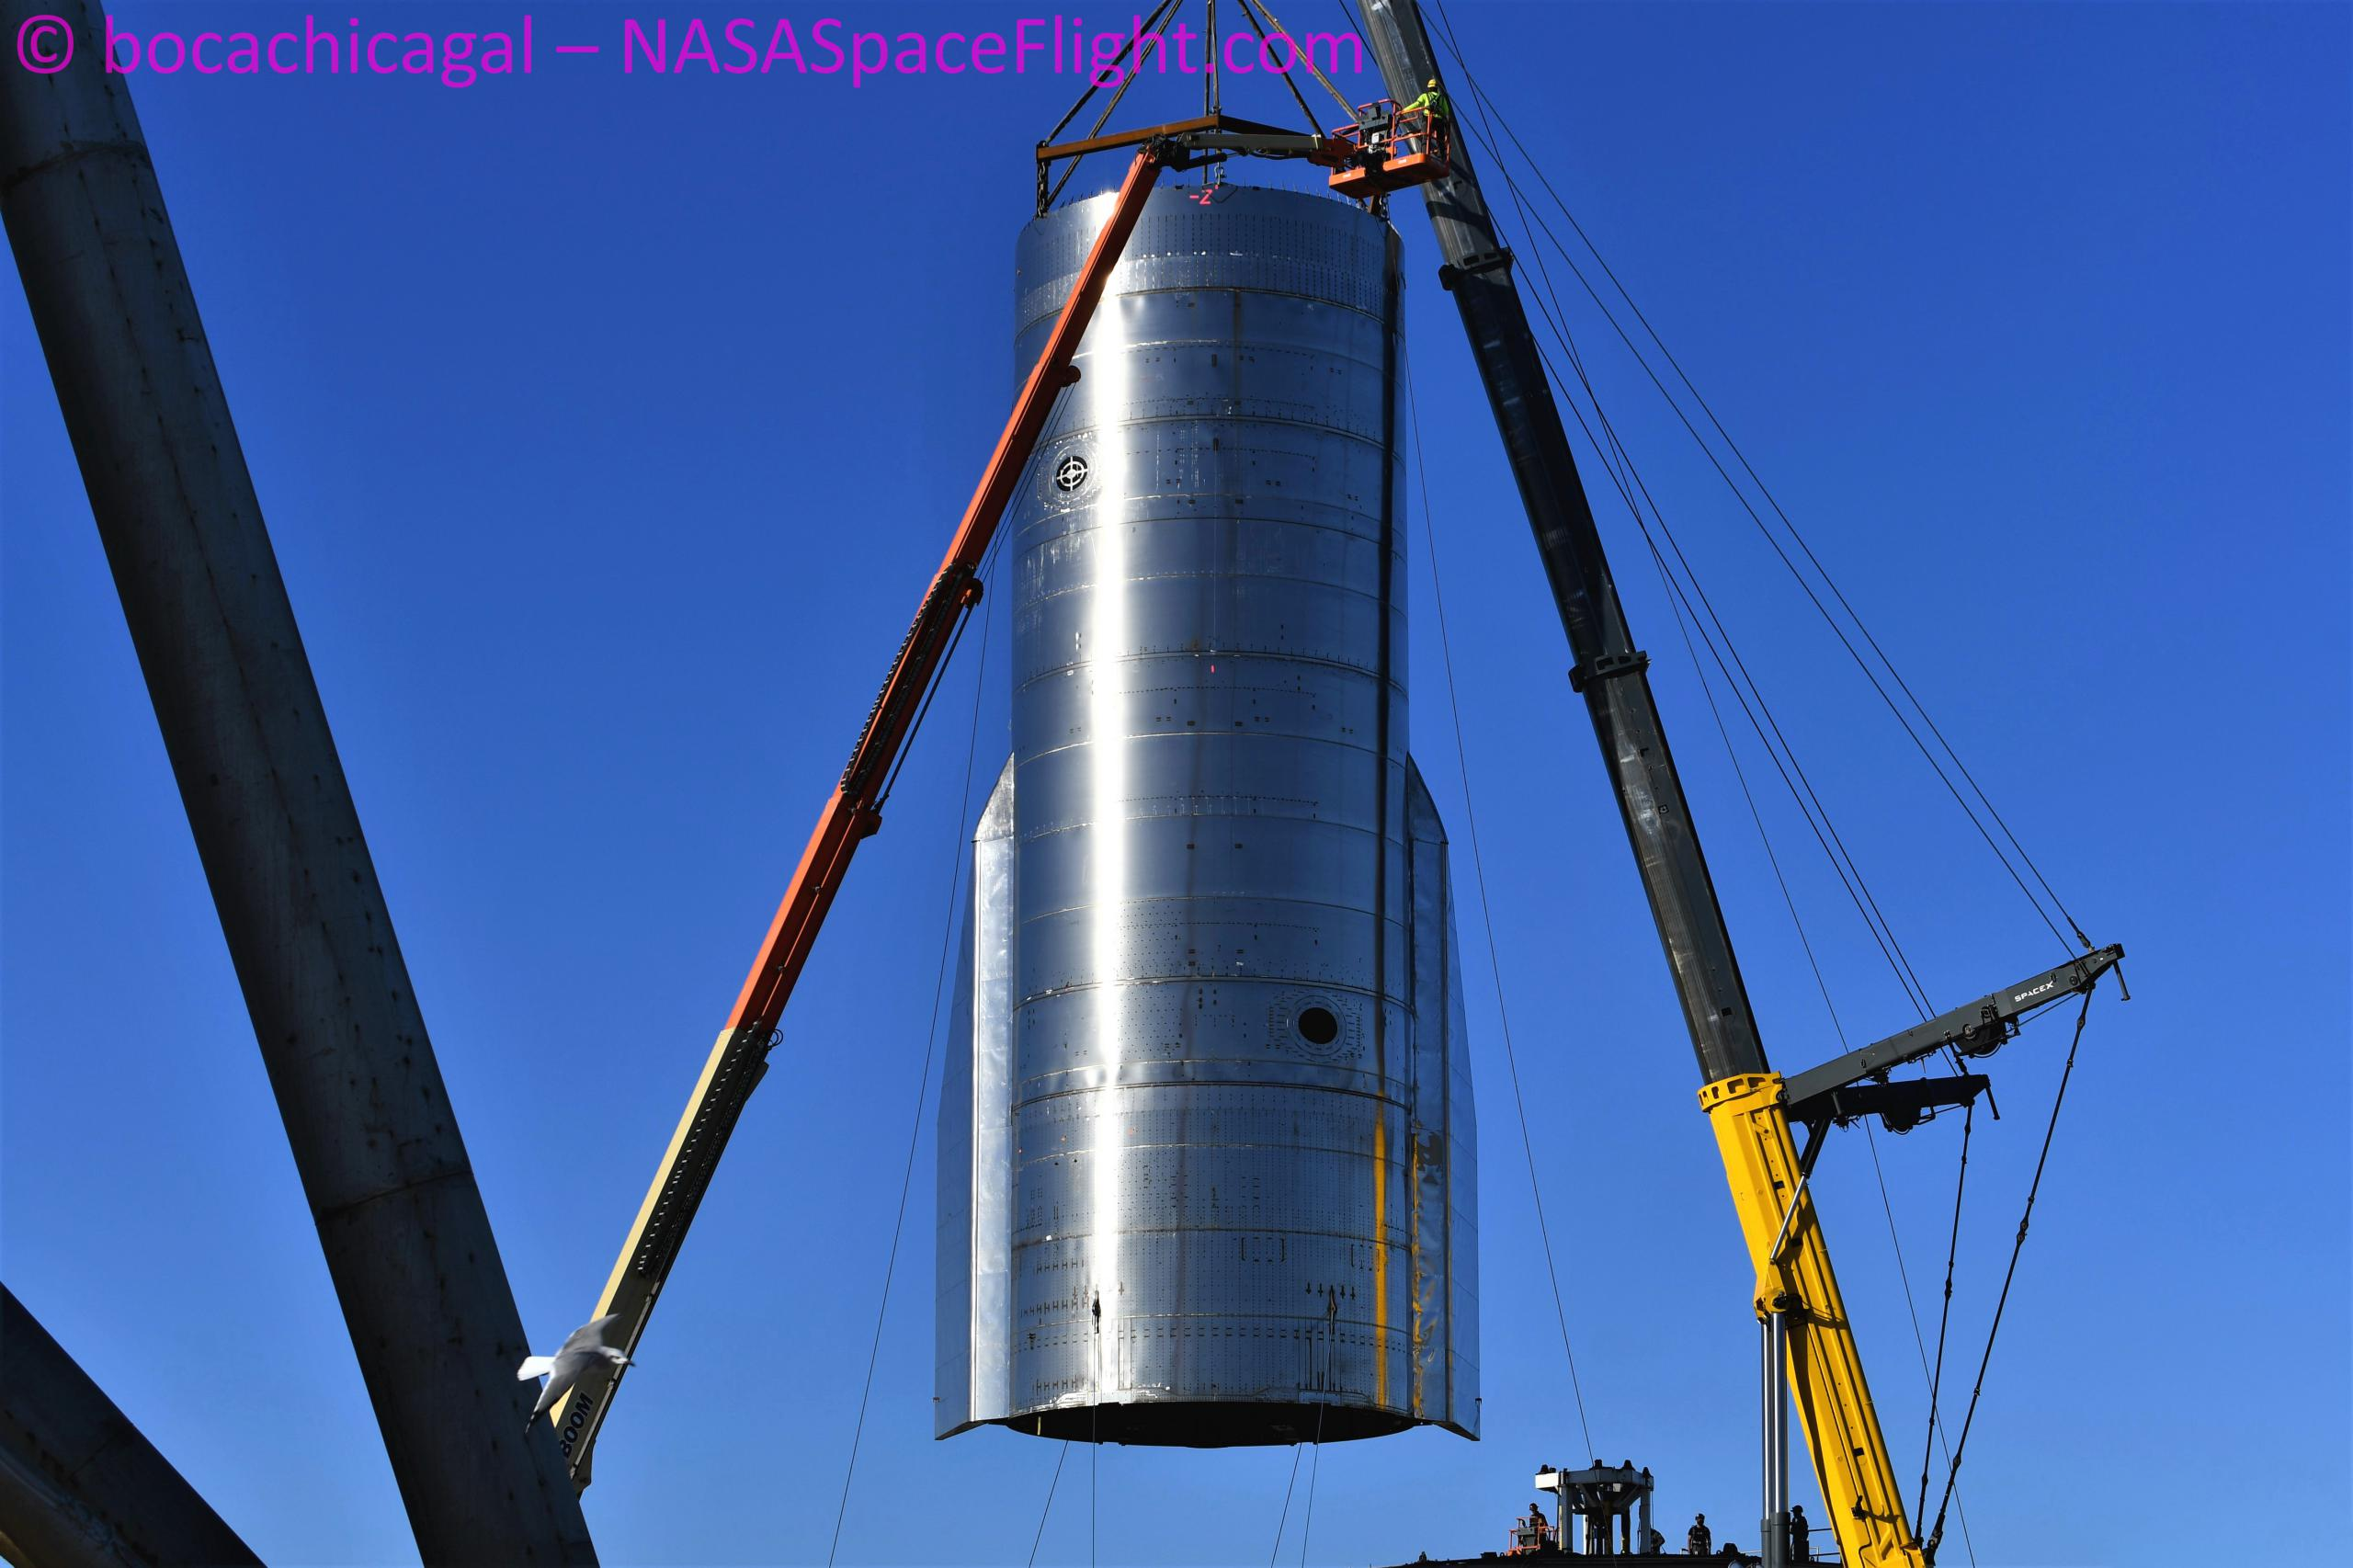 Starship Boca Chica 093020 (NASASpaceflight – bocachicagal) SN8 mount lift 9 (c)